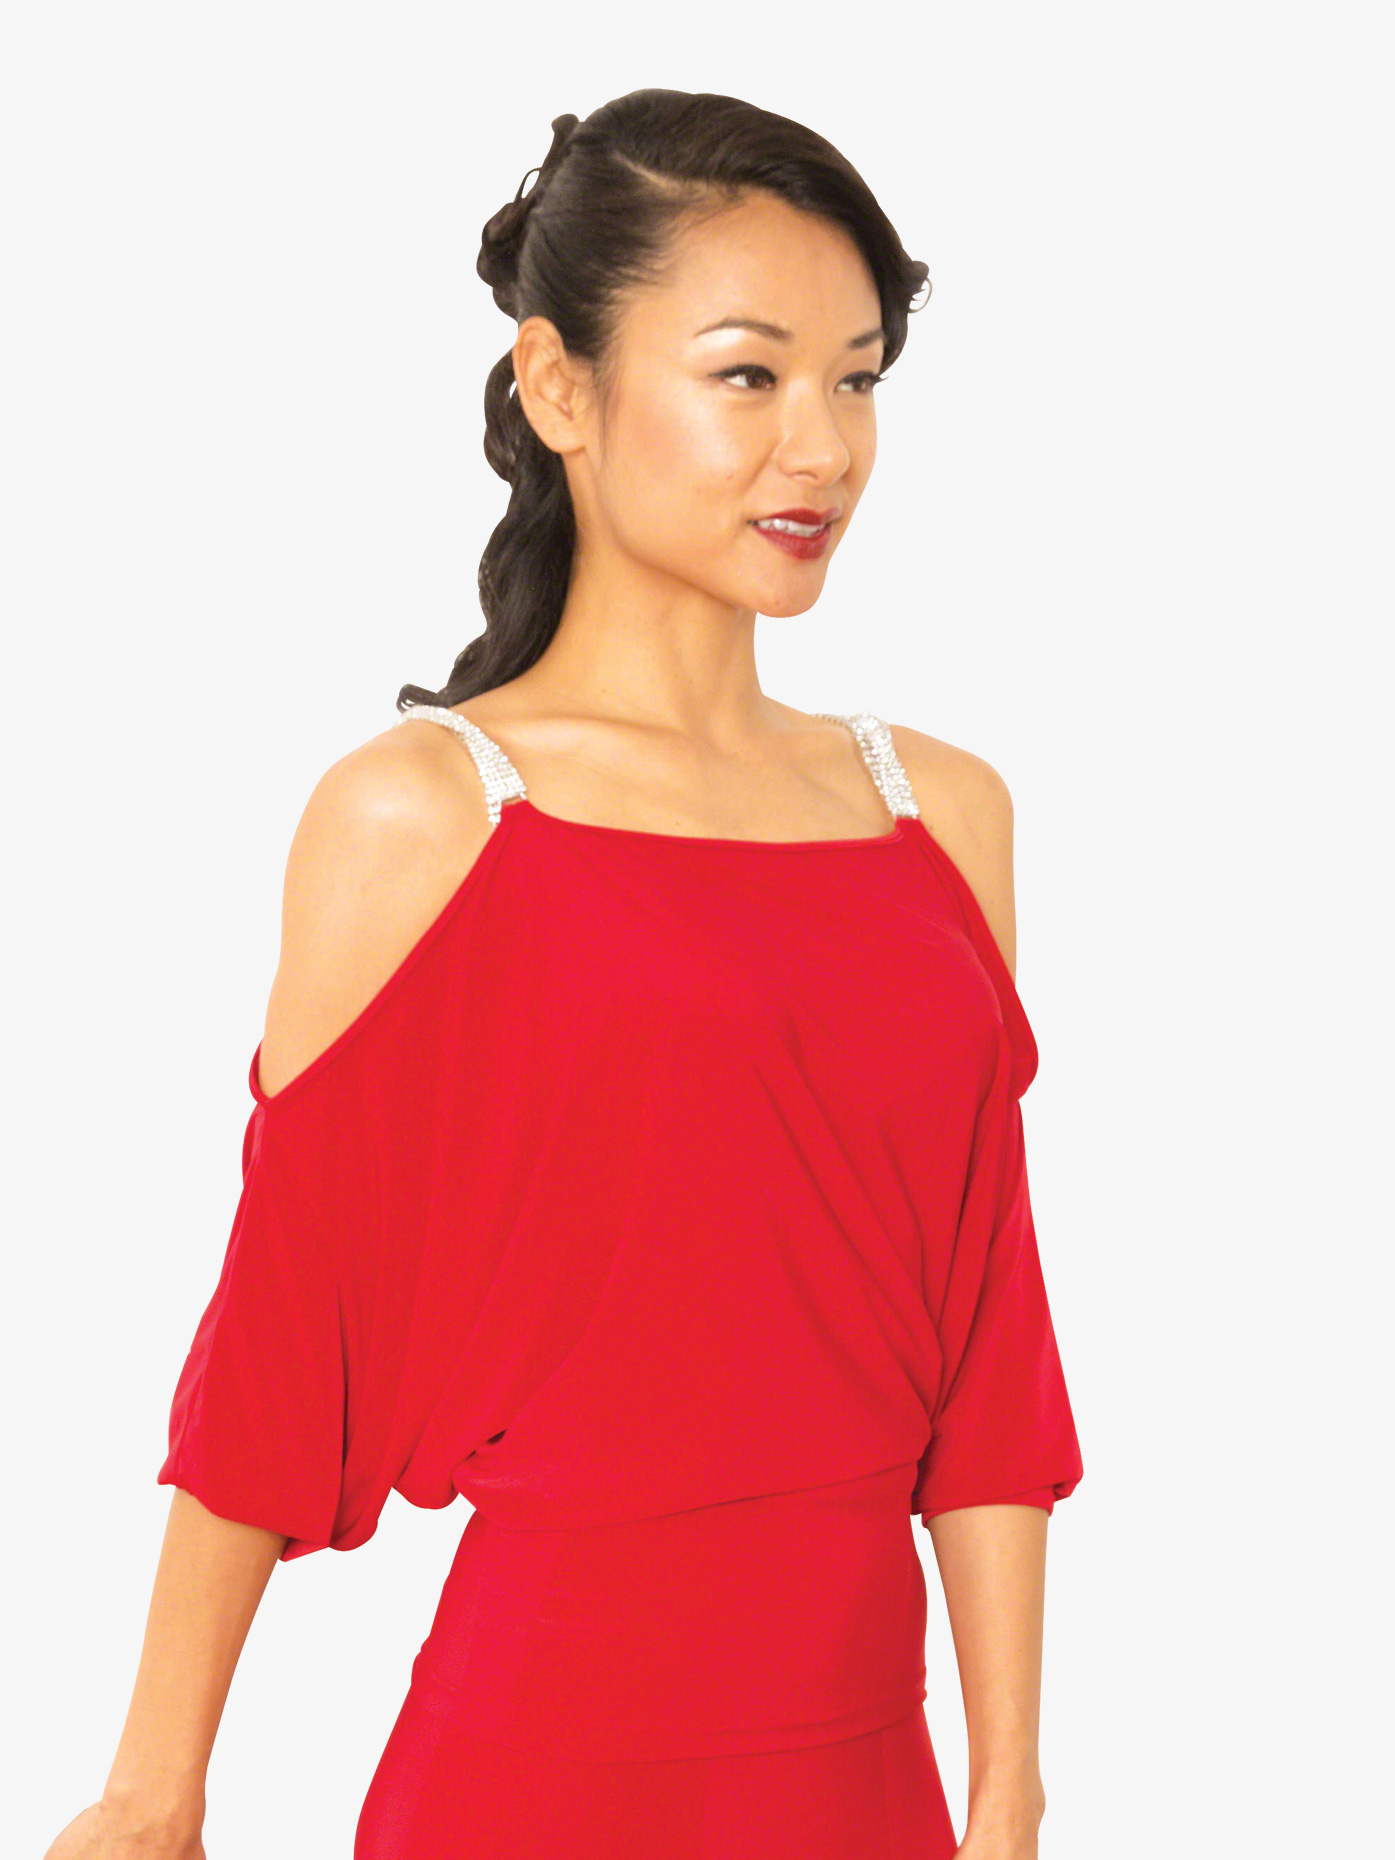 5be84bcd7620e Womens Cold Shoulder Dolman Sleeve Ballroom Dance Top - Style No T811.  Loading zoom